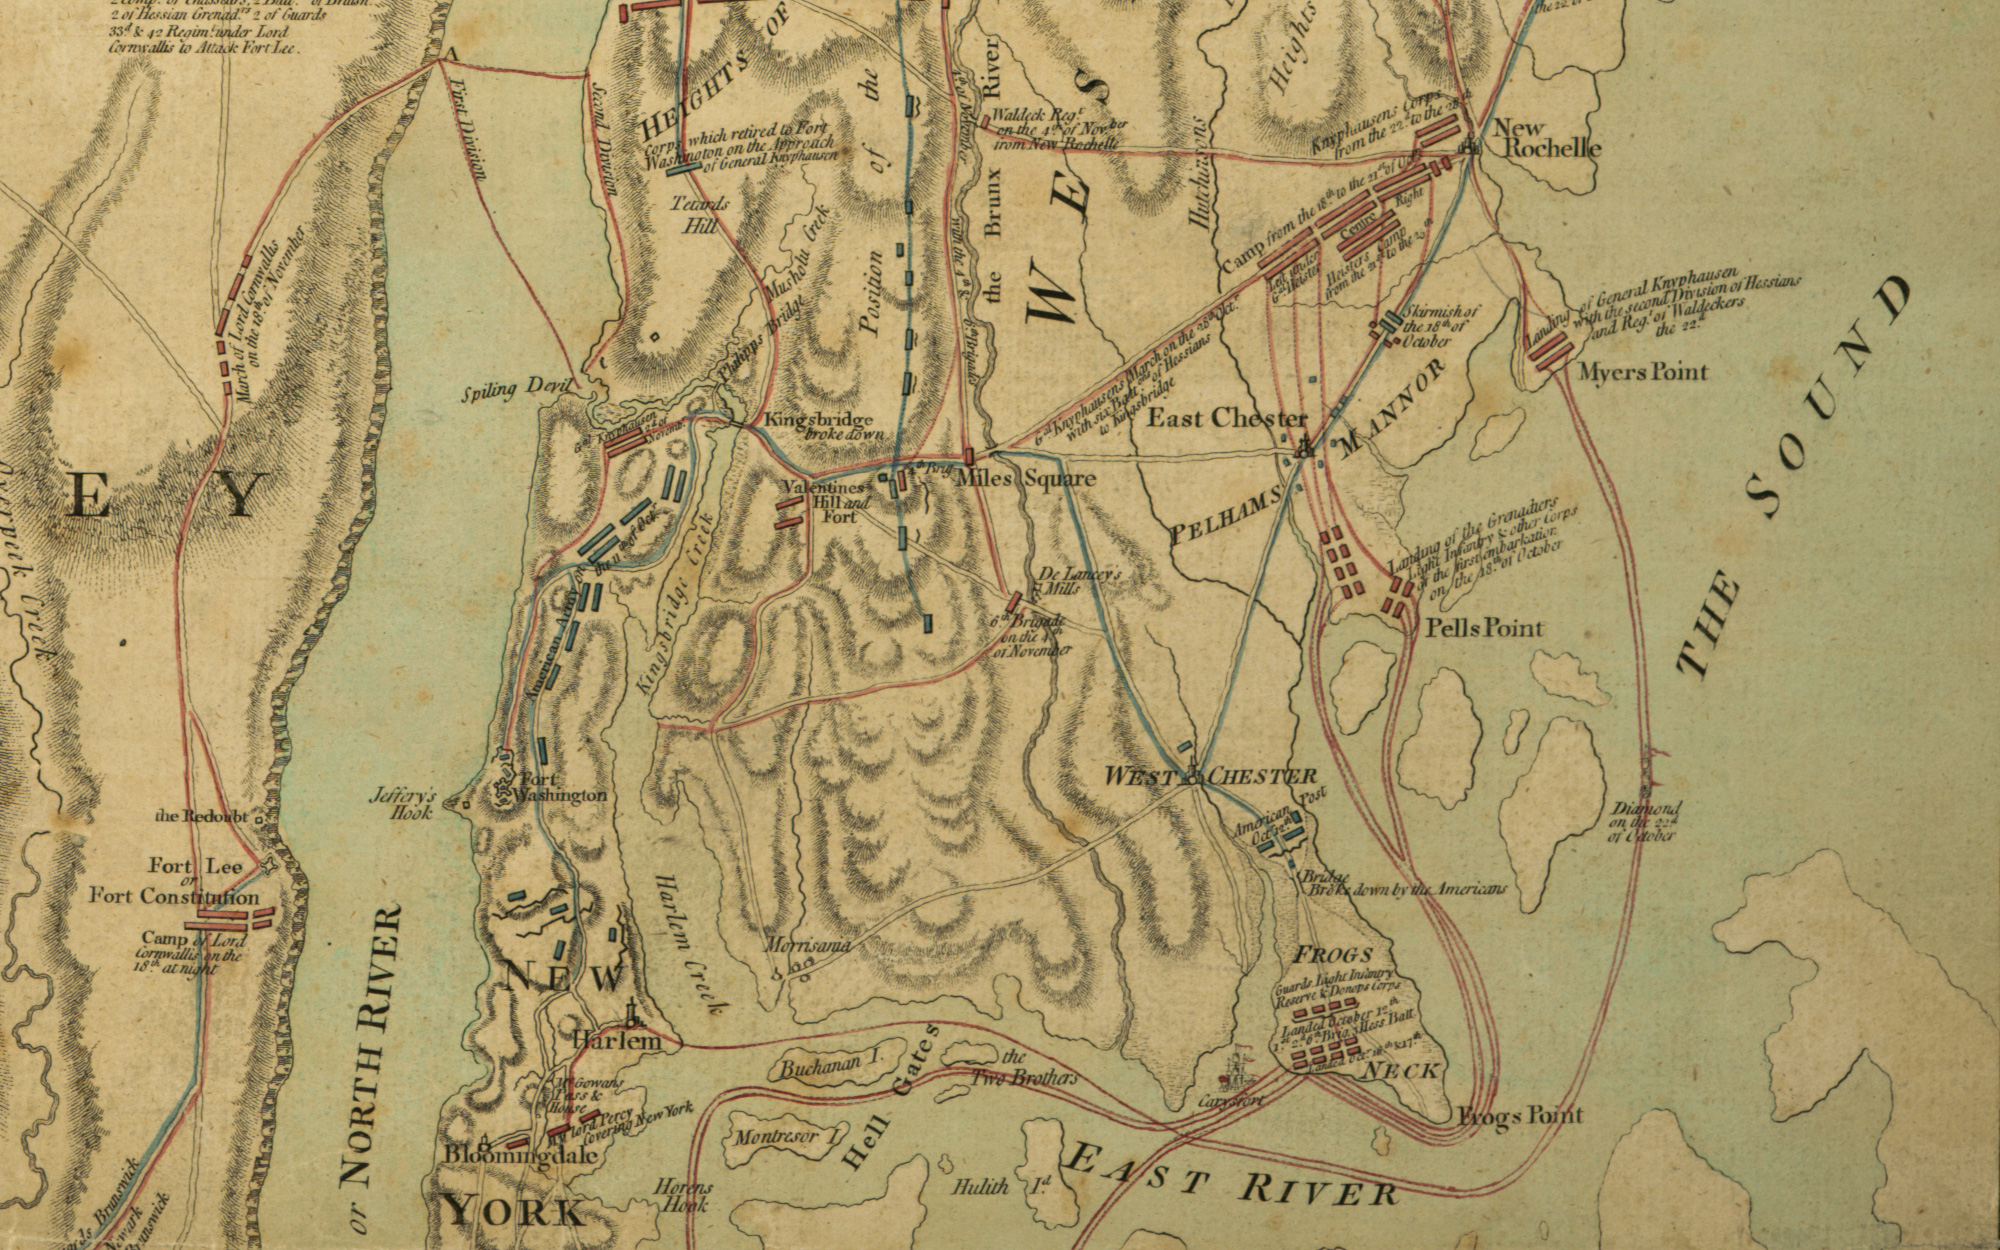 Closeup of Frogs Point on White Plans map by William Faden in 17